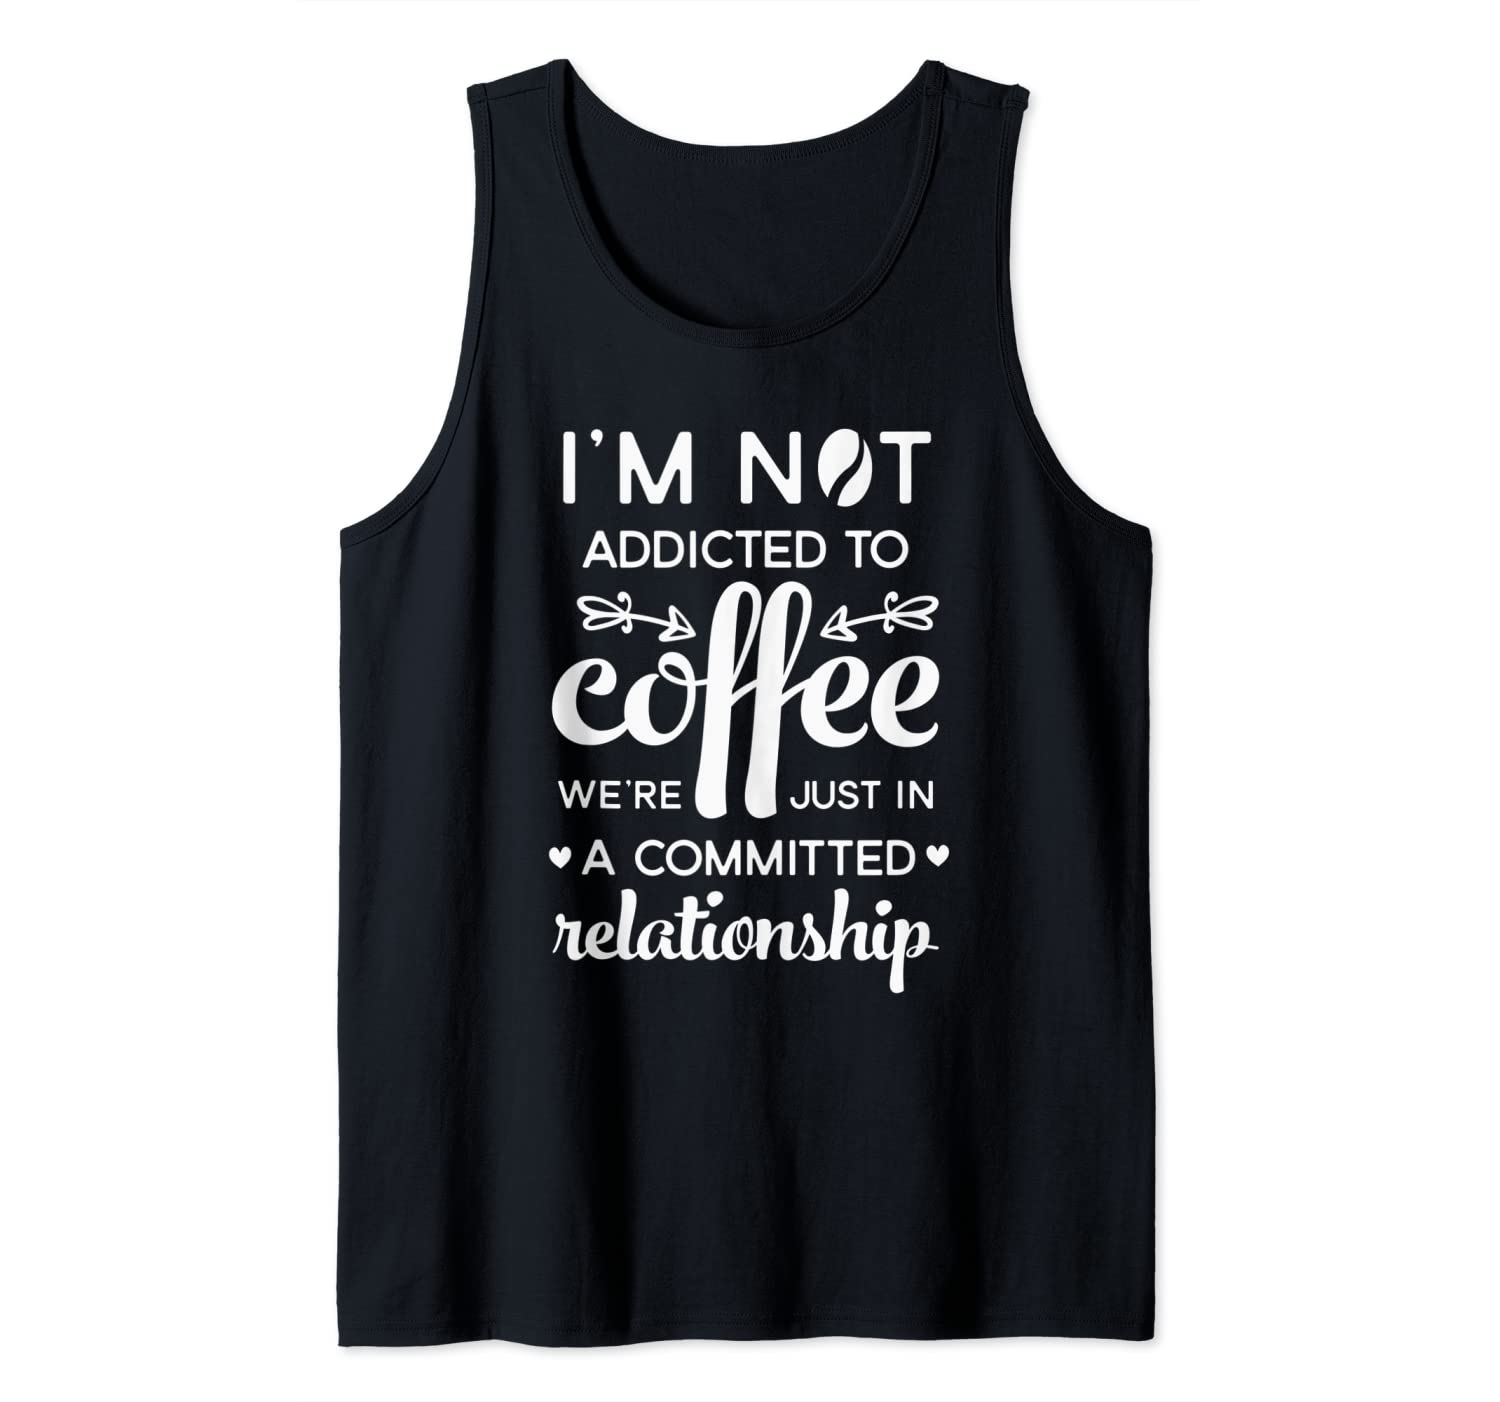 Funny I'm not addicted to coffee committed relationship Tank Top